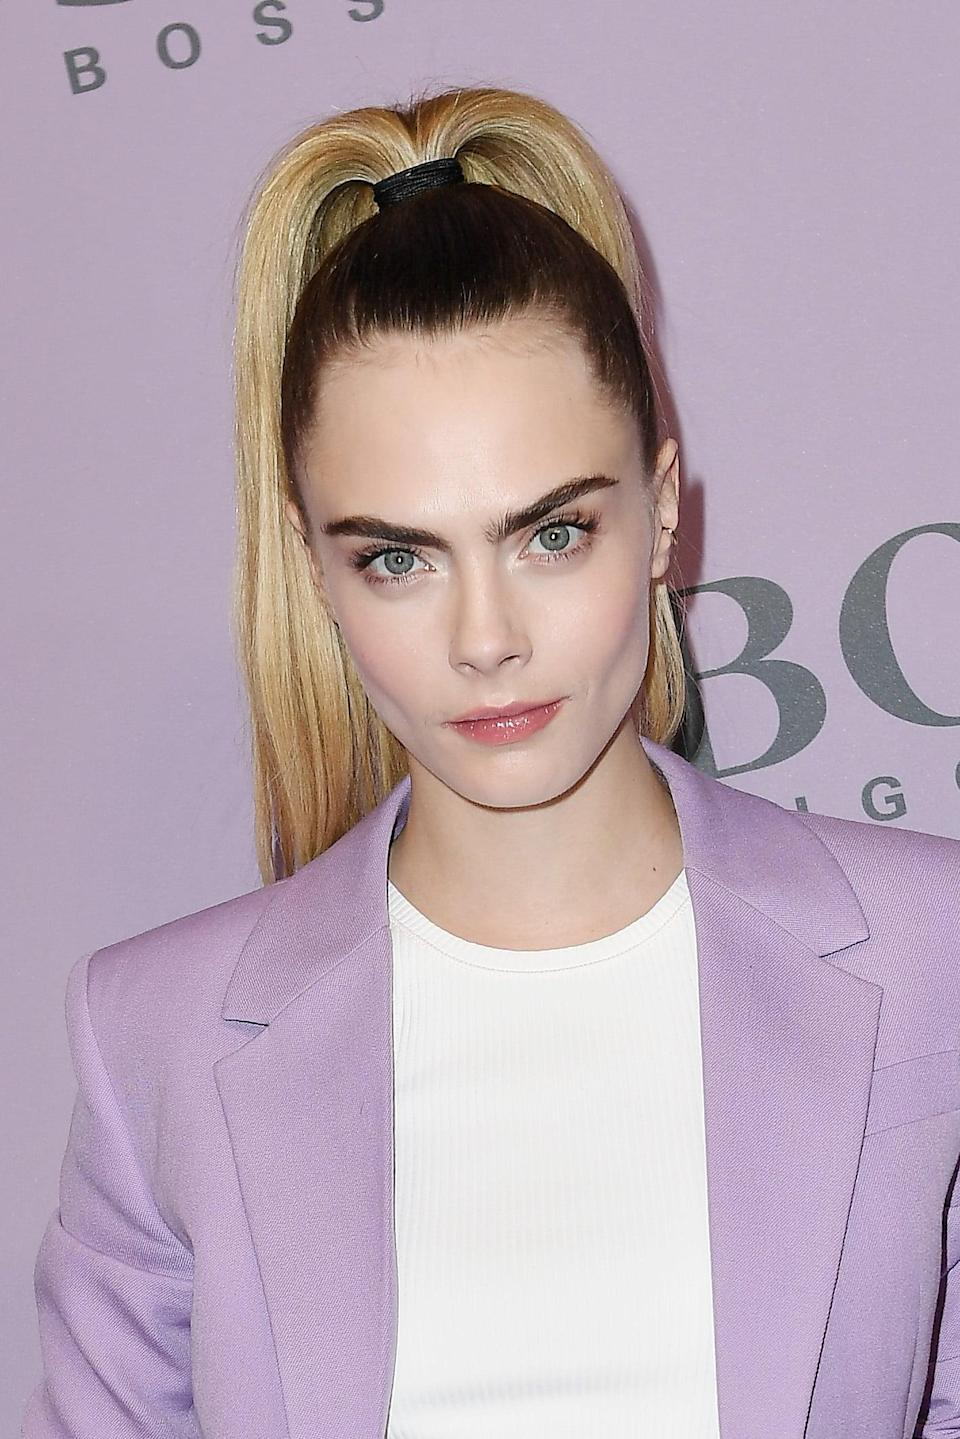 <p>Sometimes you just can't beat a simple high ponytail. Whilst in Milan in February for Fashion Week, Delevingne chose to wear a superhigh blond ponytail to contrast her dark brunette roots and pretty lilac suit. </p>